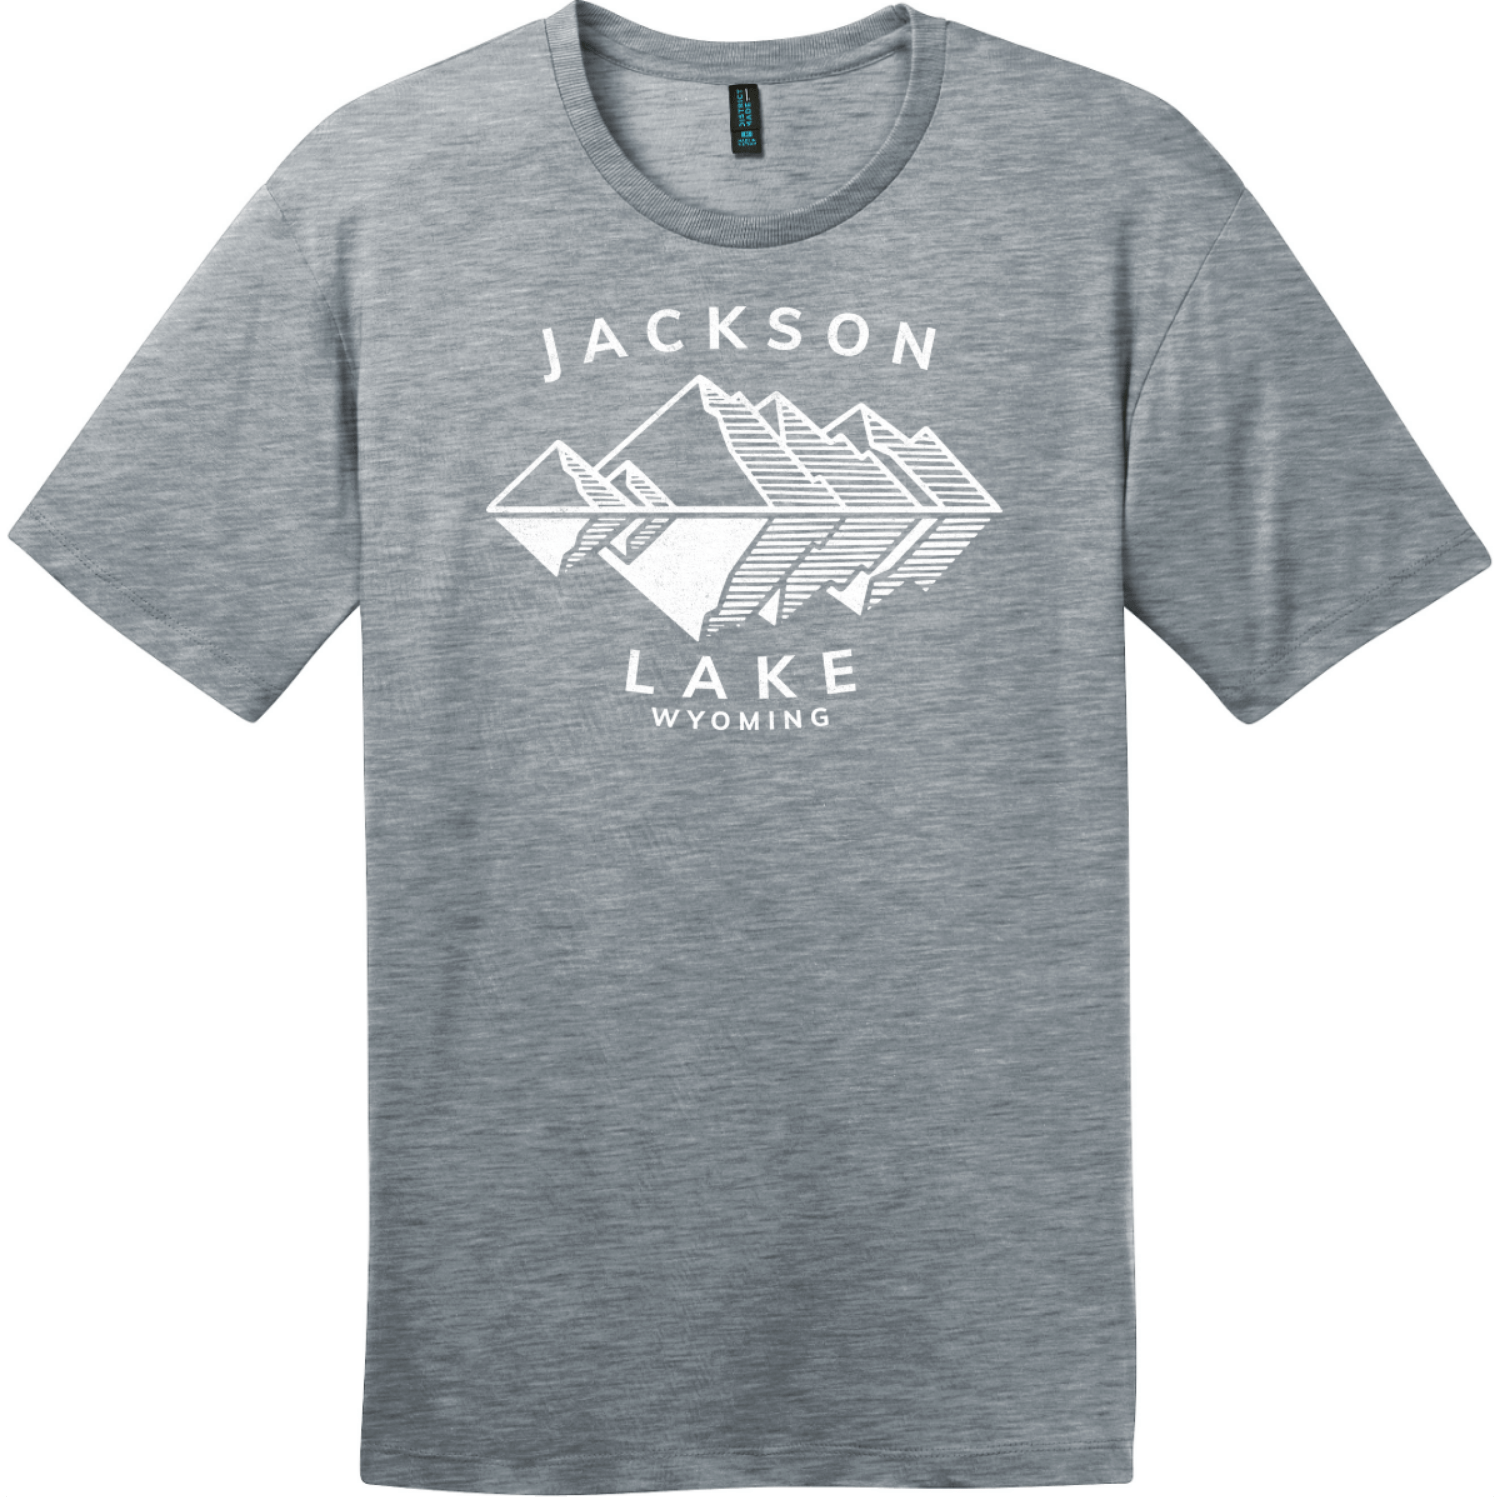 Jackson Lake Wyoming Mountains T-Shirt Heathered Steel District Perfect Weight Tee DT104